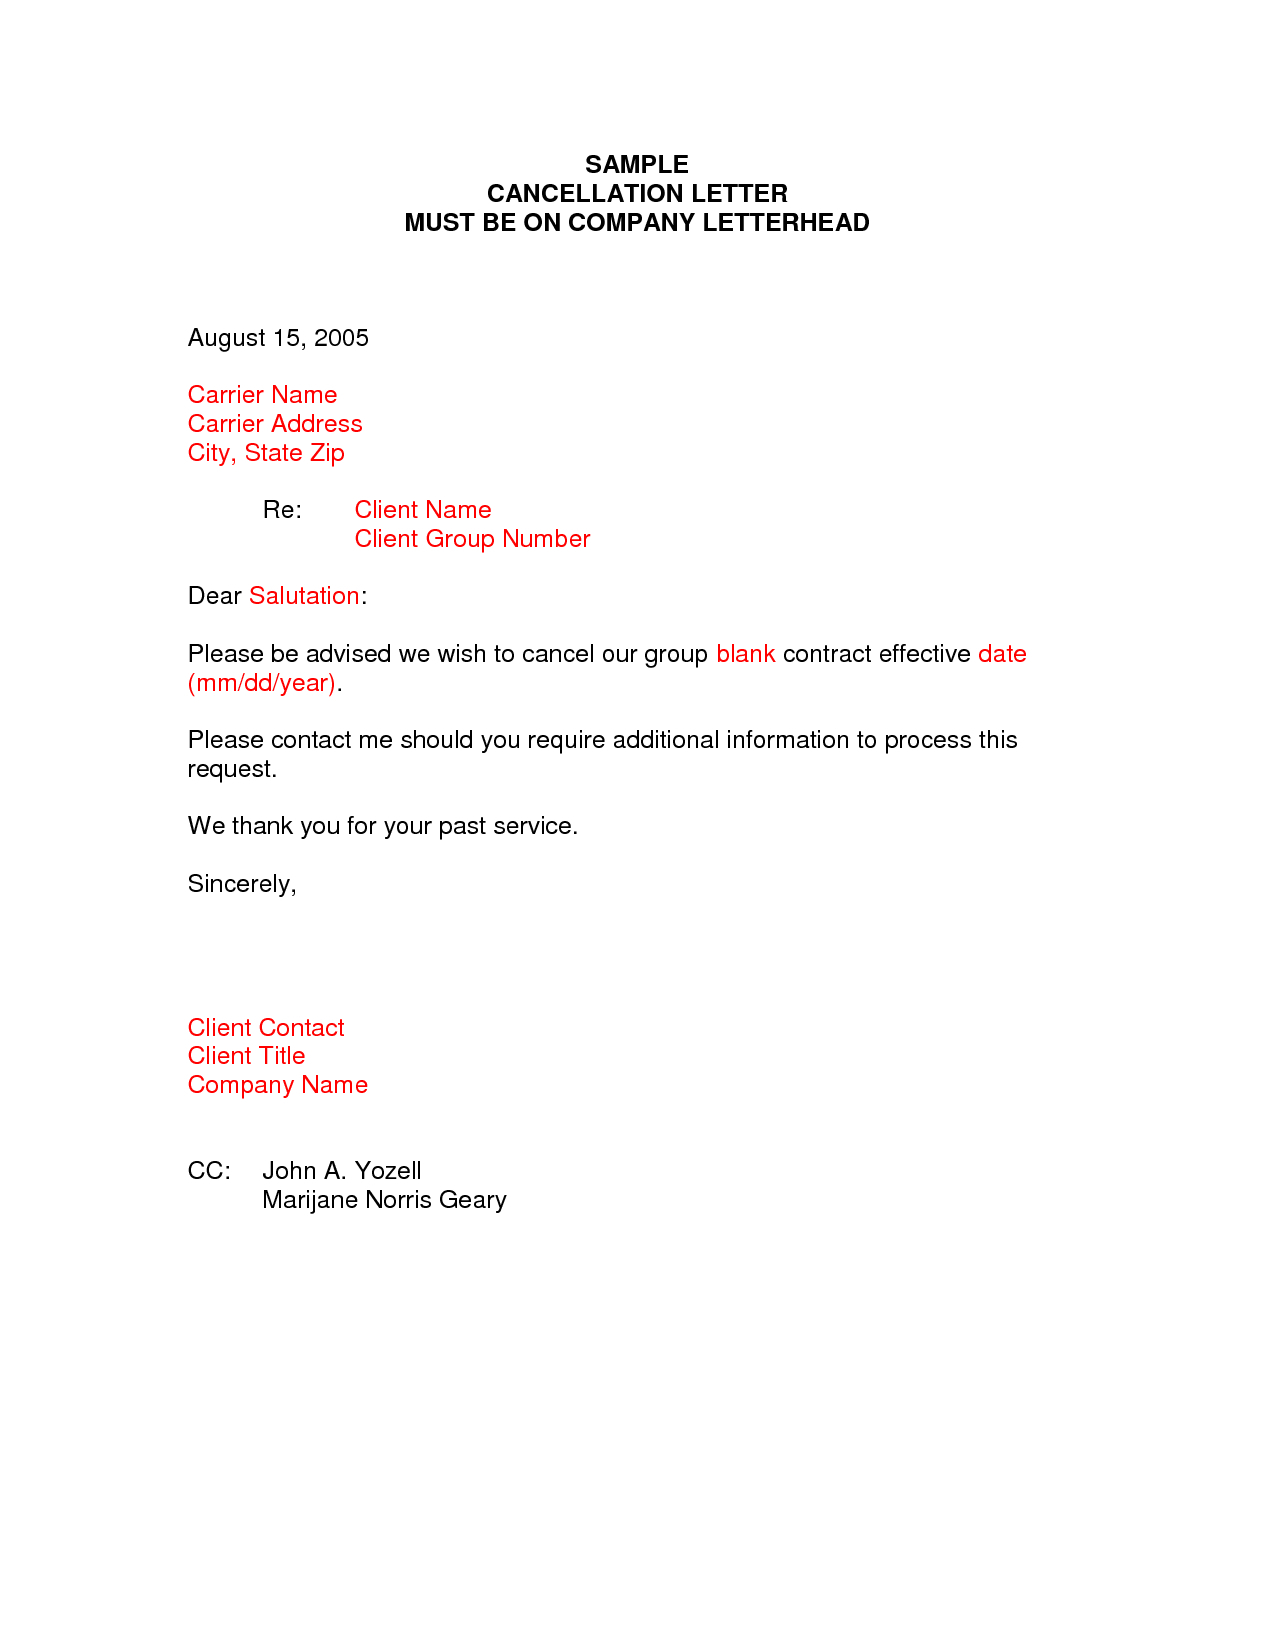 Extended Car Warranty Cancellation Letter Template Examples  Letter With Extended Warranty Agreement Template